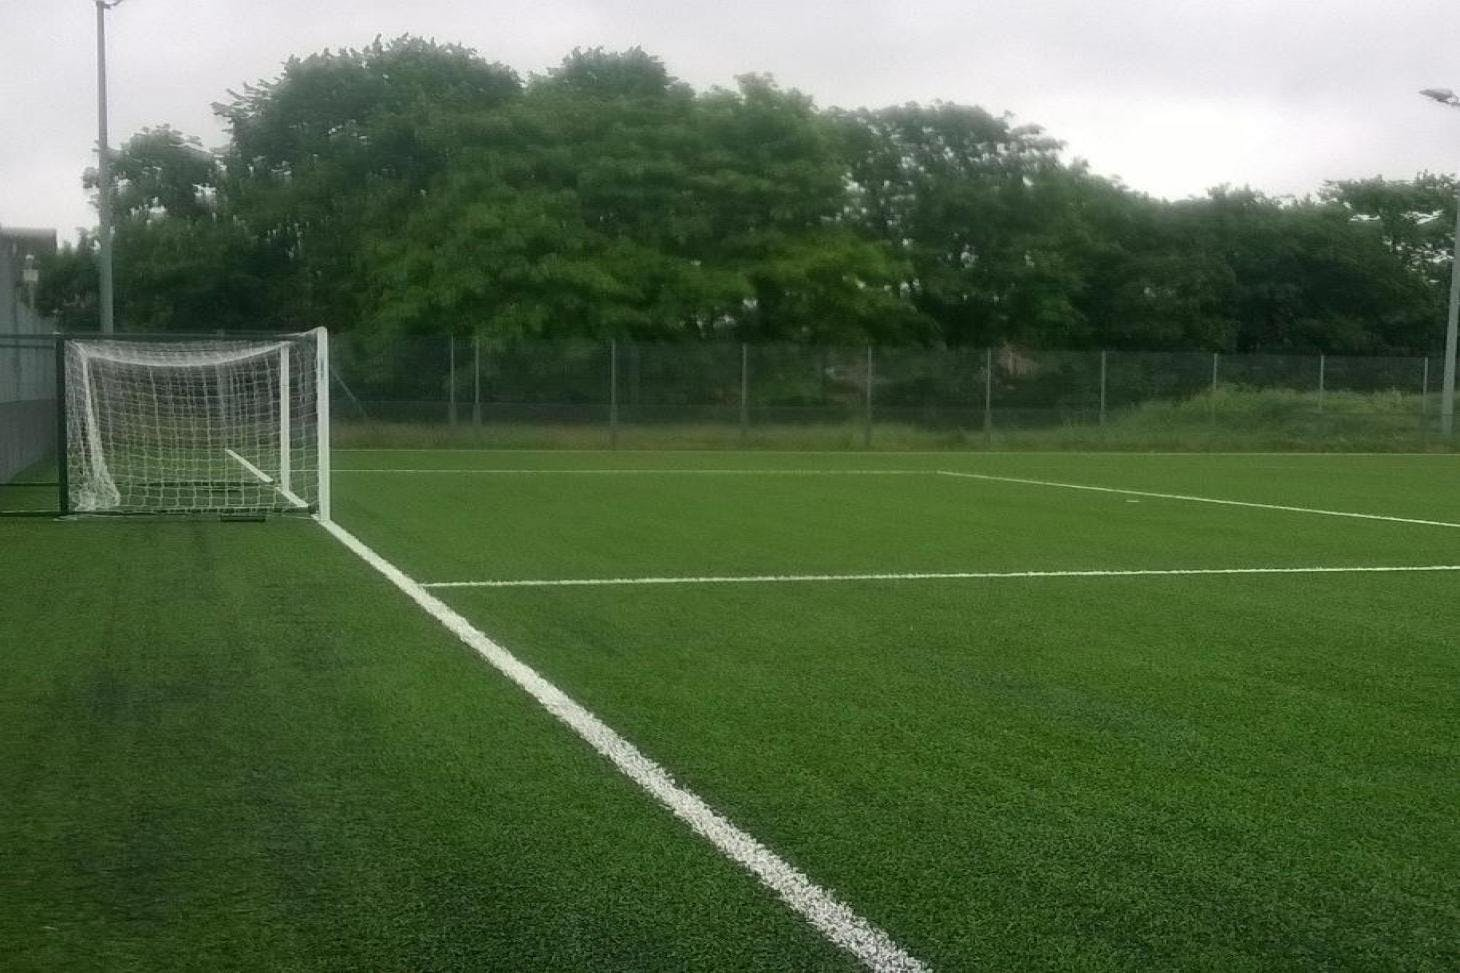 Bellingham Leisure & Lifestyle Centre 11 a side | 3G Astroturf football pitch